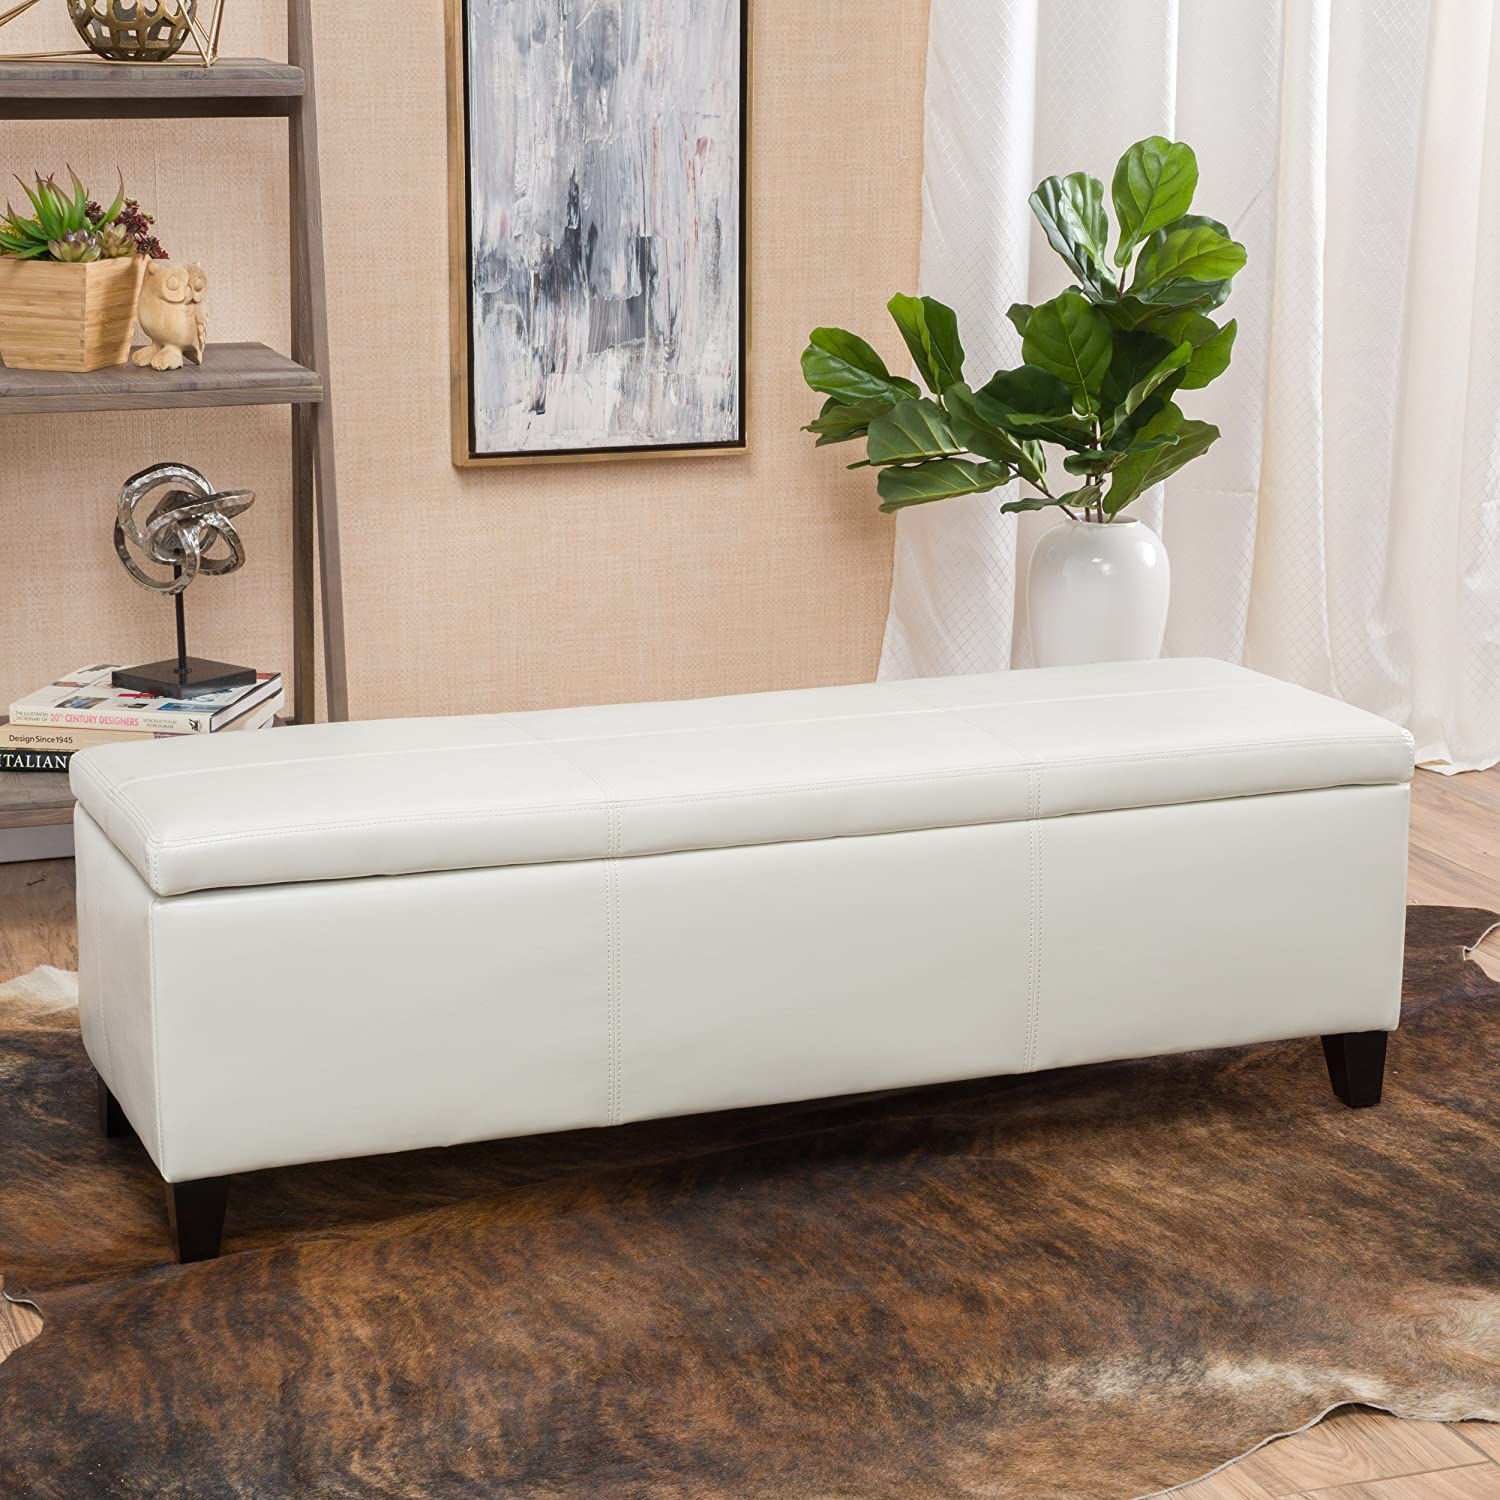 Christopher Knight Home 296846 Living Skyler Off-White Leather Storage Ottoman Bench, Ivory